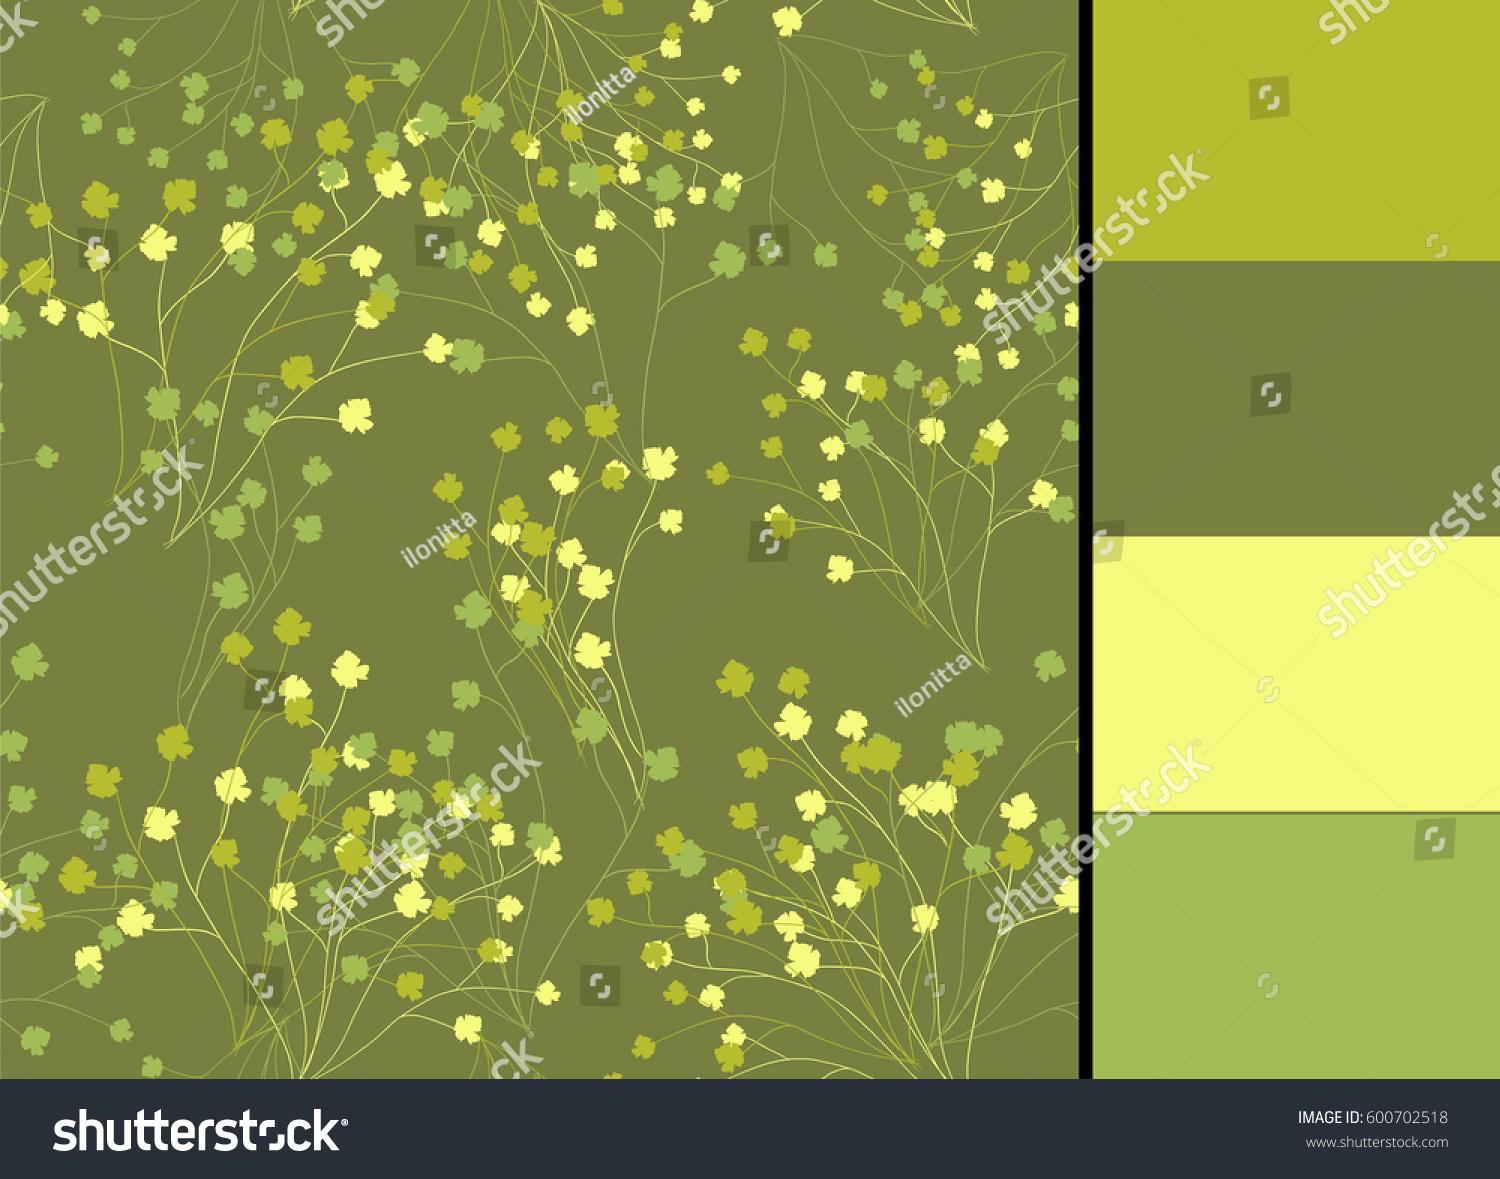 Seamless Pattern Greenery Vector Floral Branches Stock Vector ...